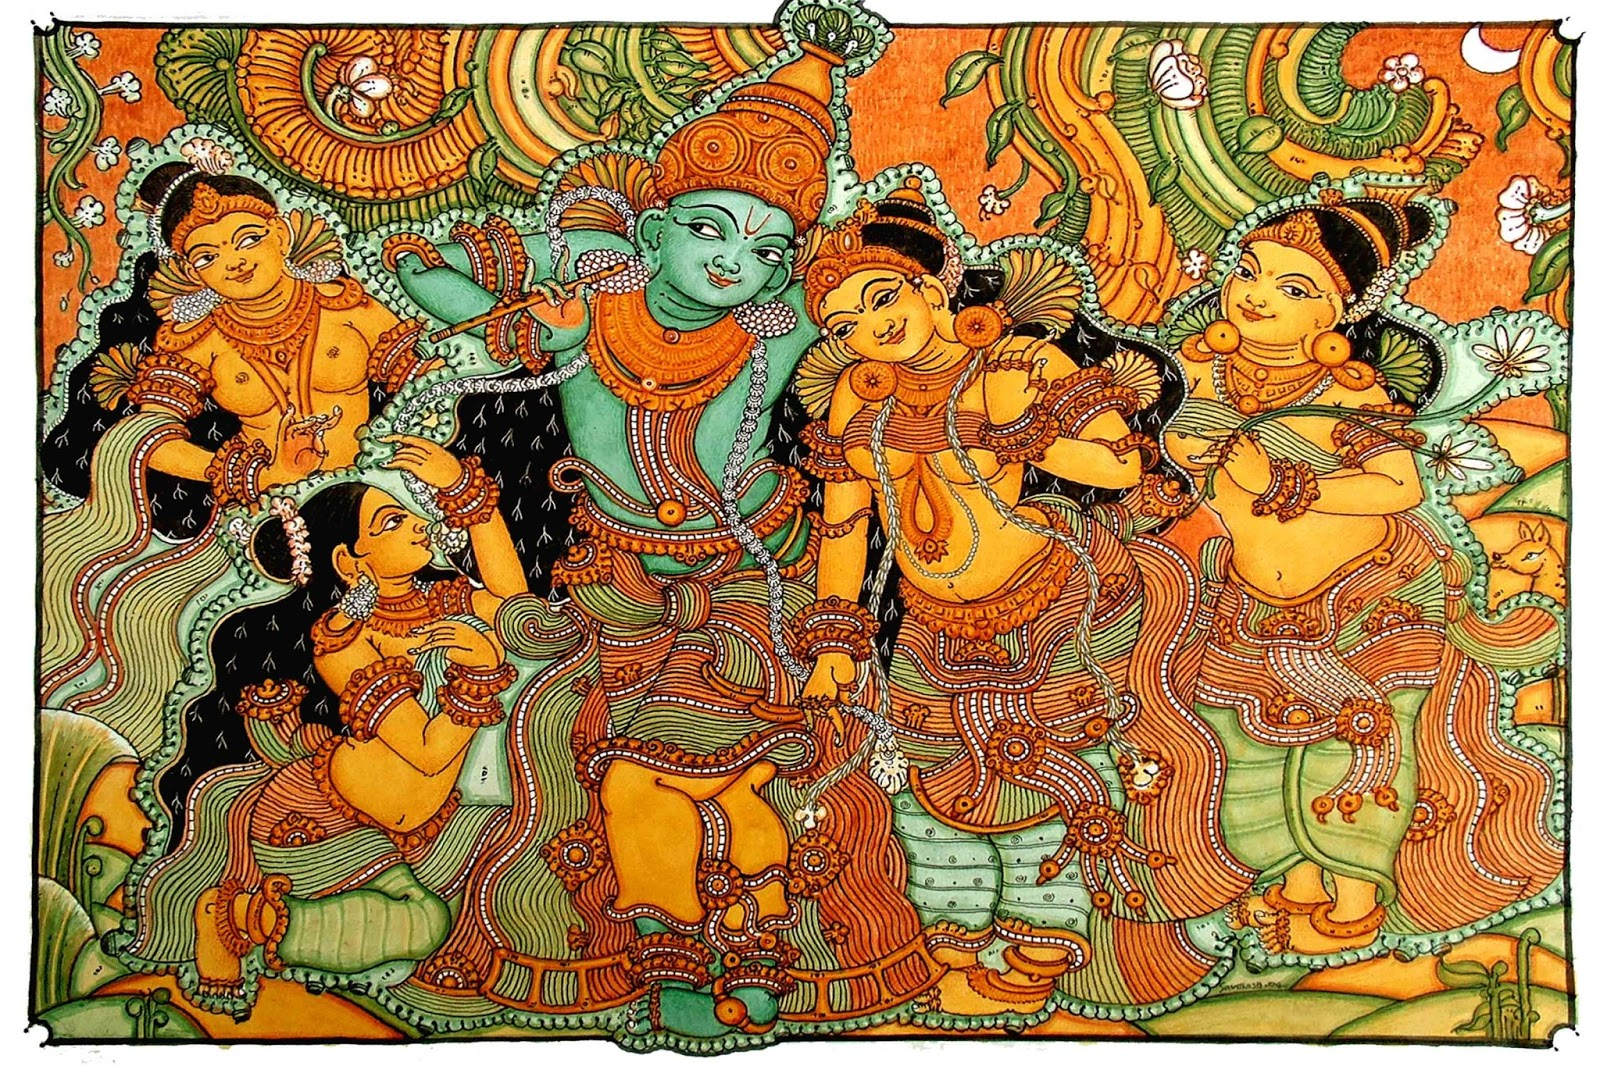 Heritage of india kerala mural paintings for Mural painting images